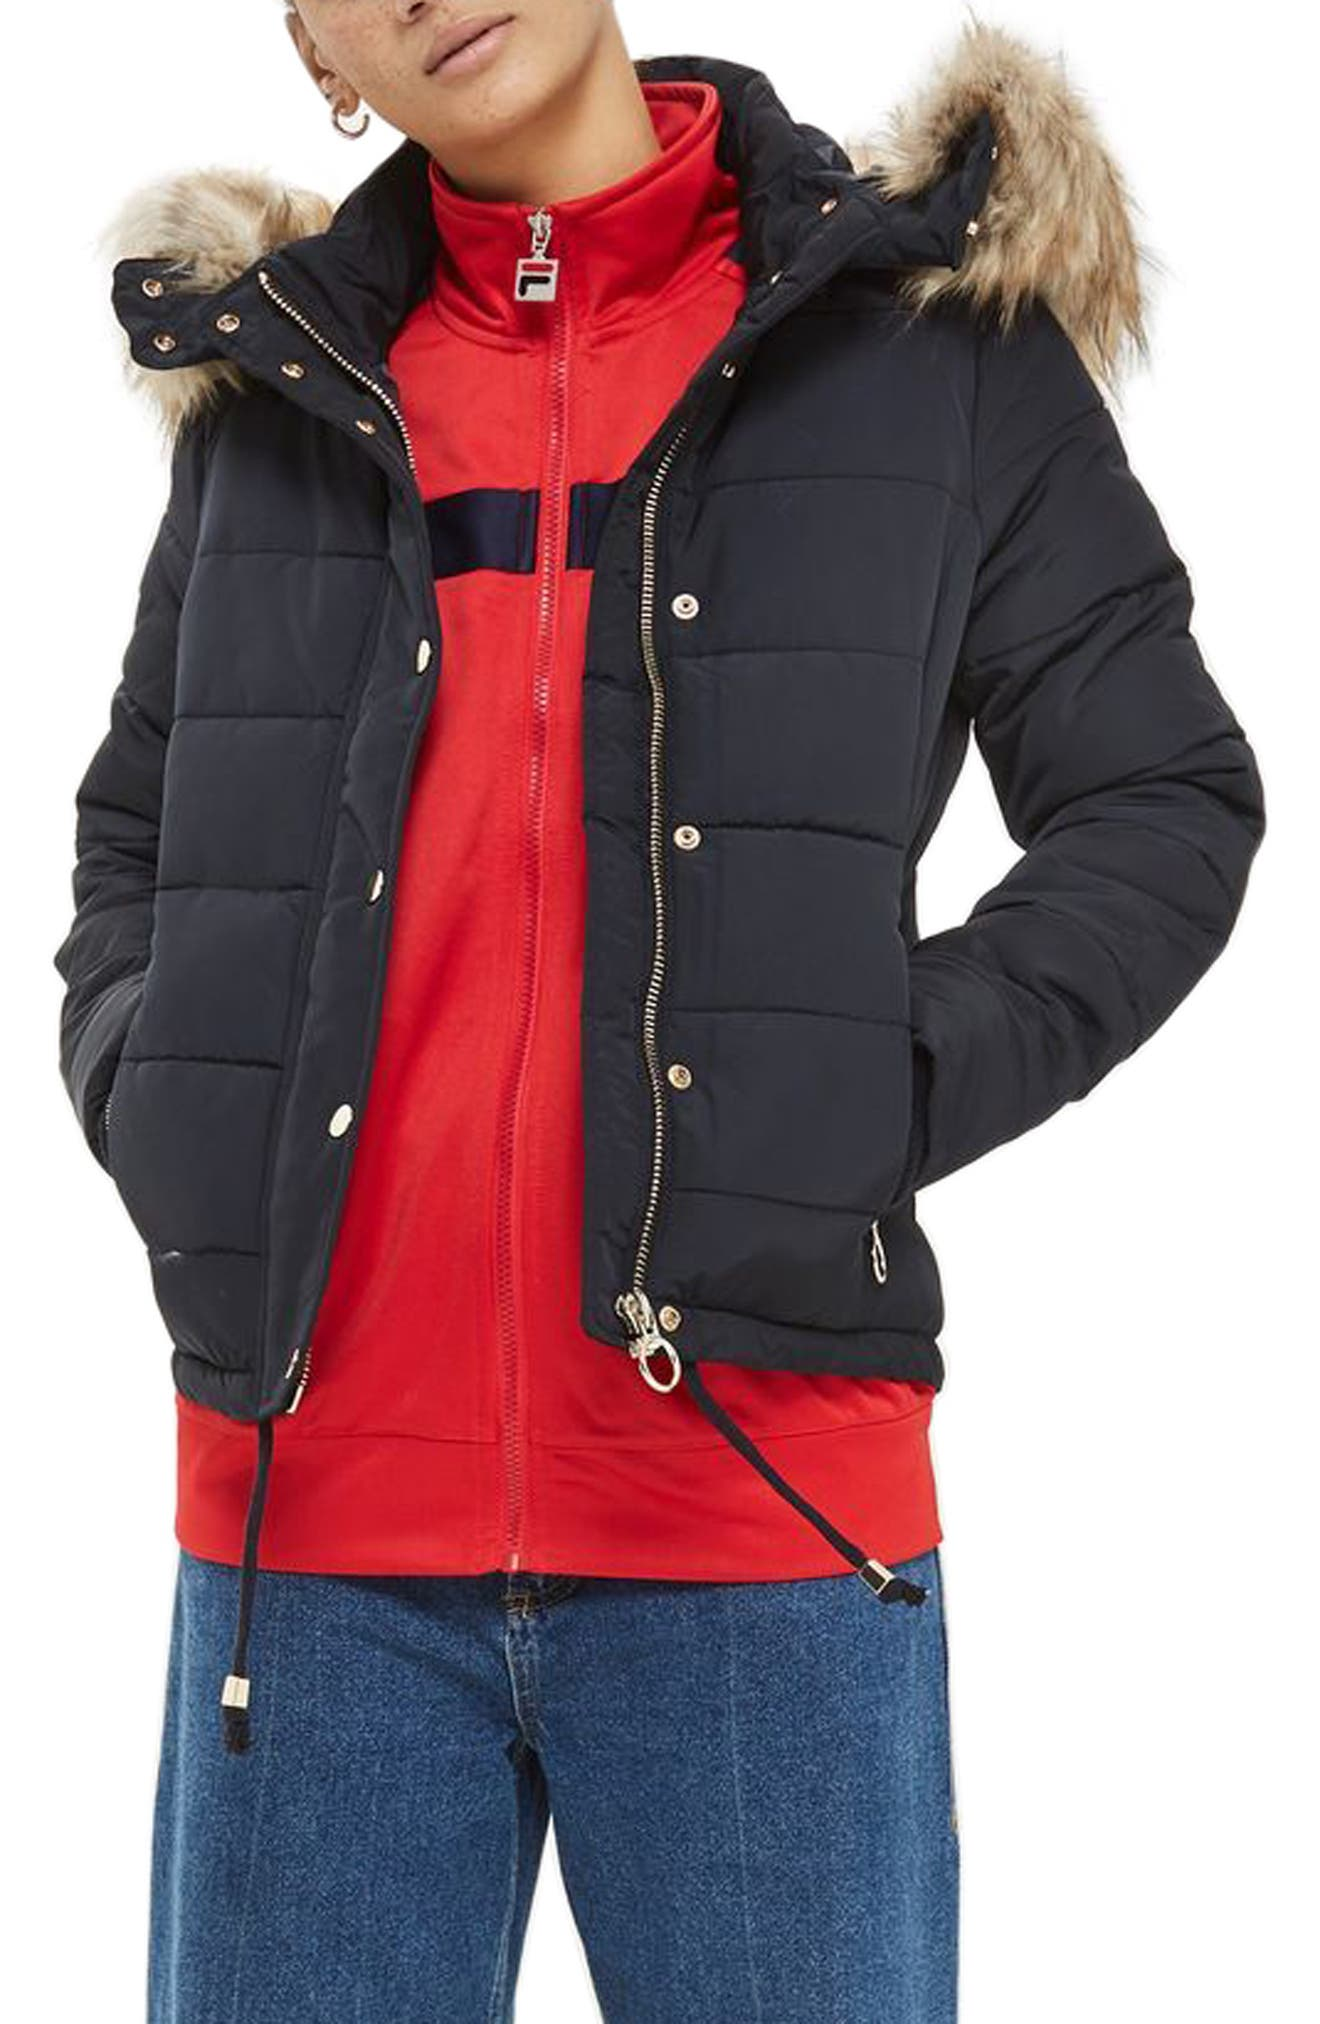 Nancy Quilted Puffer Jacket with Faux Fur Trim,                             Main thumbnail 1, color,                             410